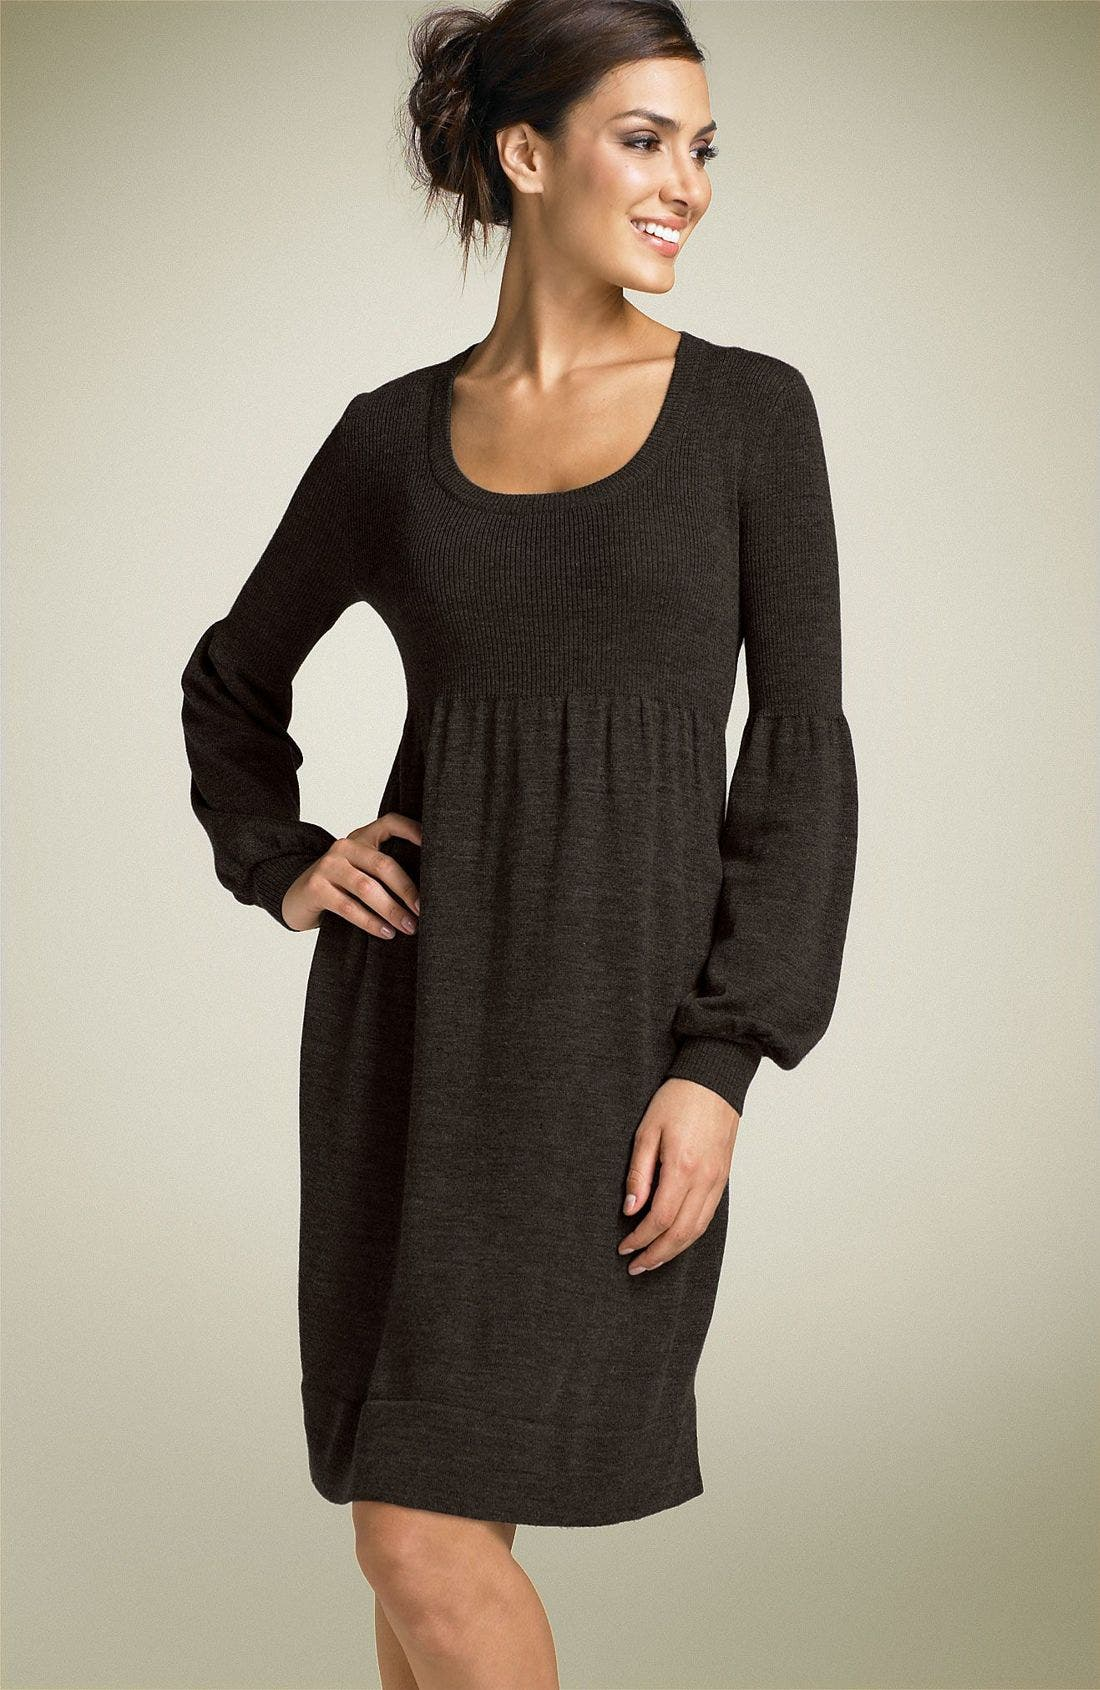 Alternate Image 1 Selected - Calvin Klein Scoop Neck Sweater Dress